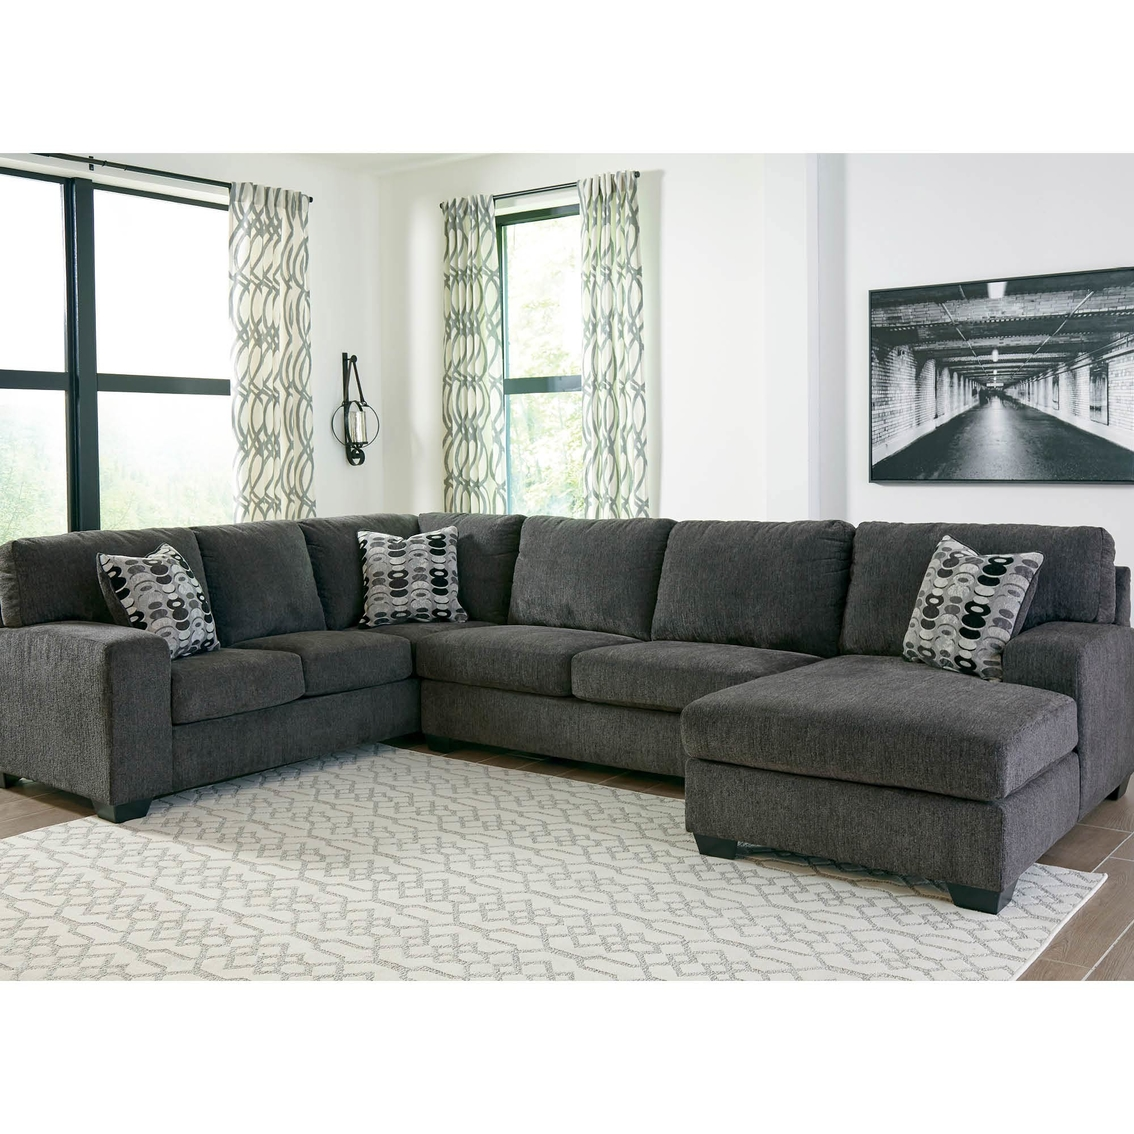 Sectional Couch Hattiesburg Ms: Signature Design By Ashley Ballinasloe 3 Pc. Sectional Raf